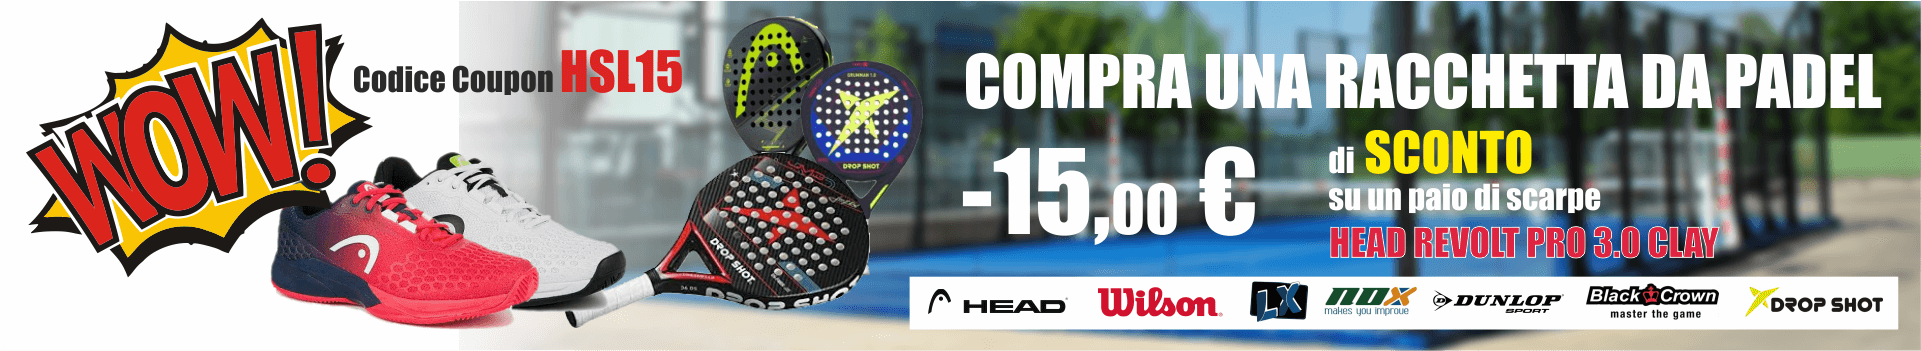 Head Revolution PRO 3.0 CLAY TENNIS CORNER